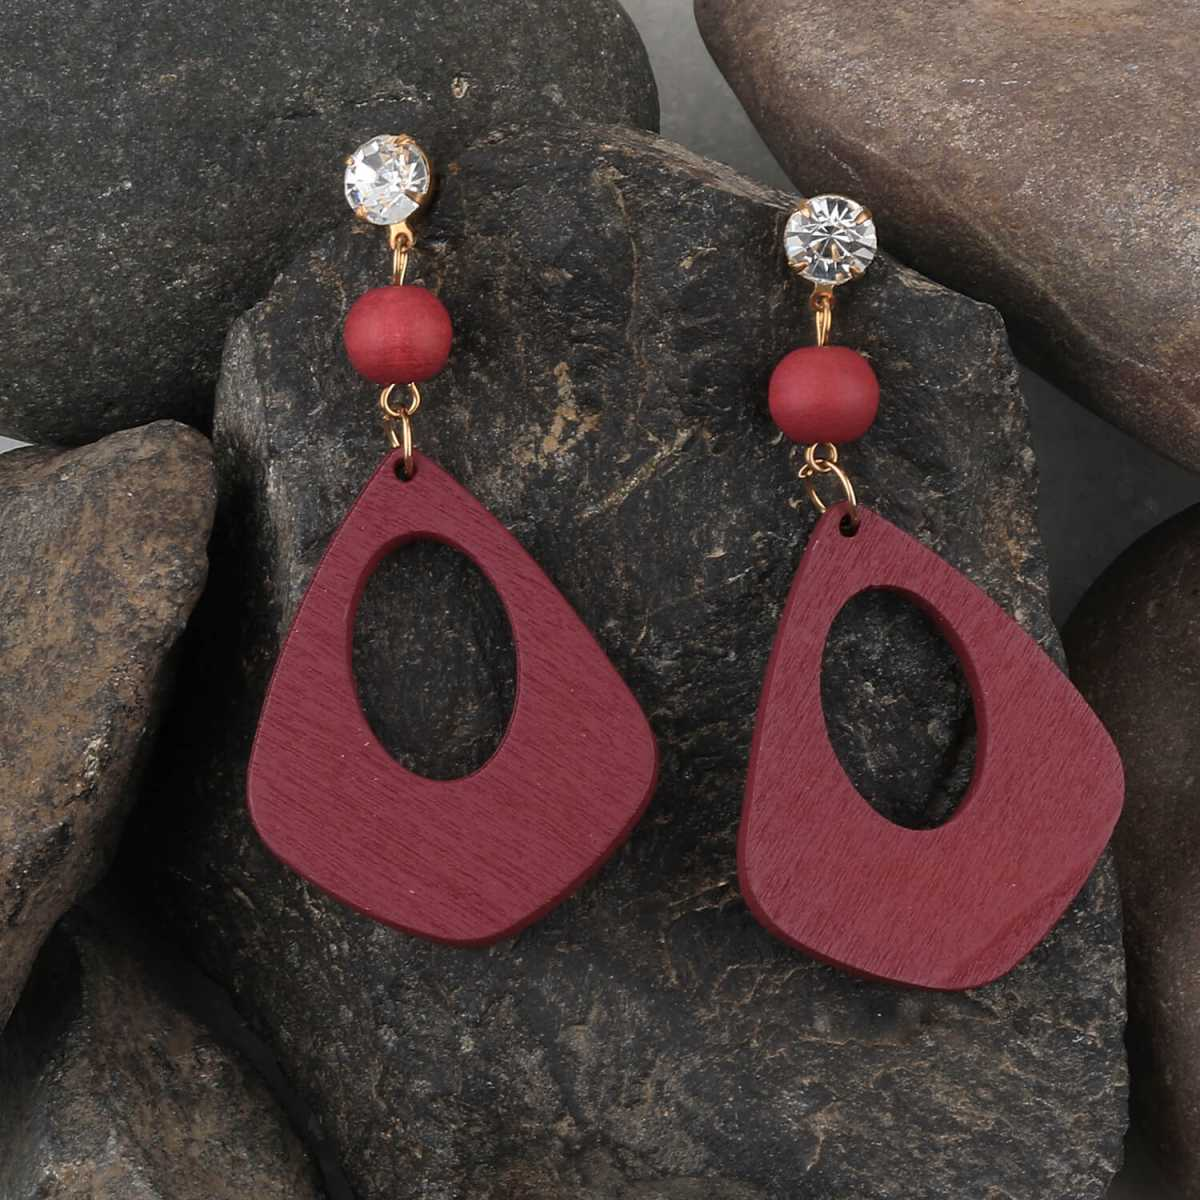 SILVER SHINE  Attractive Diamond Maroon Wooden Light Weight Earrings for Girls and Women.